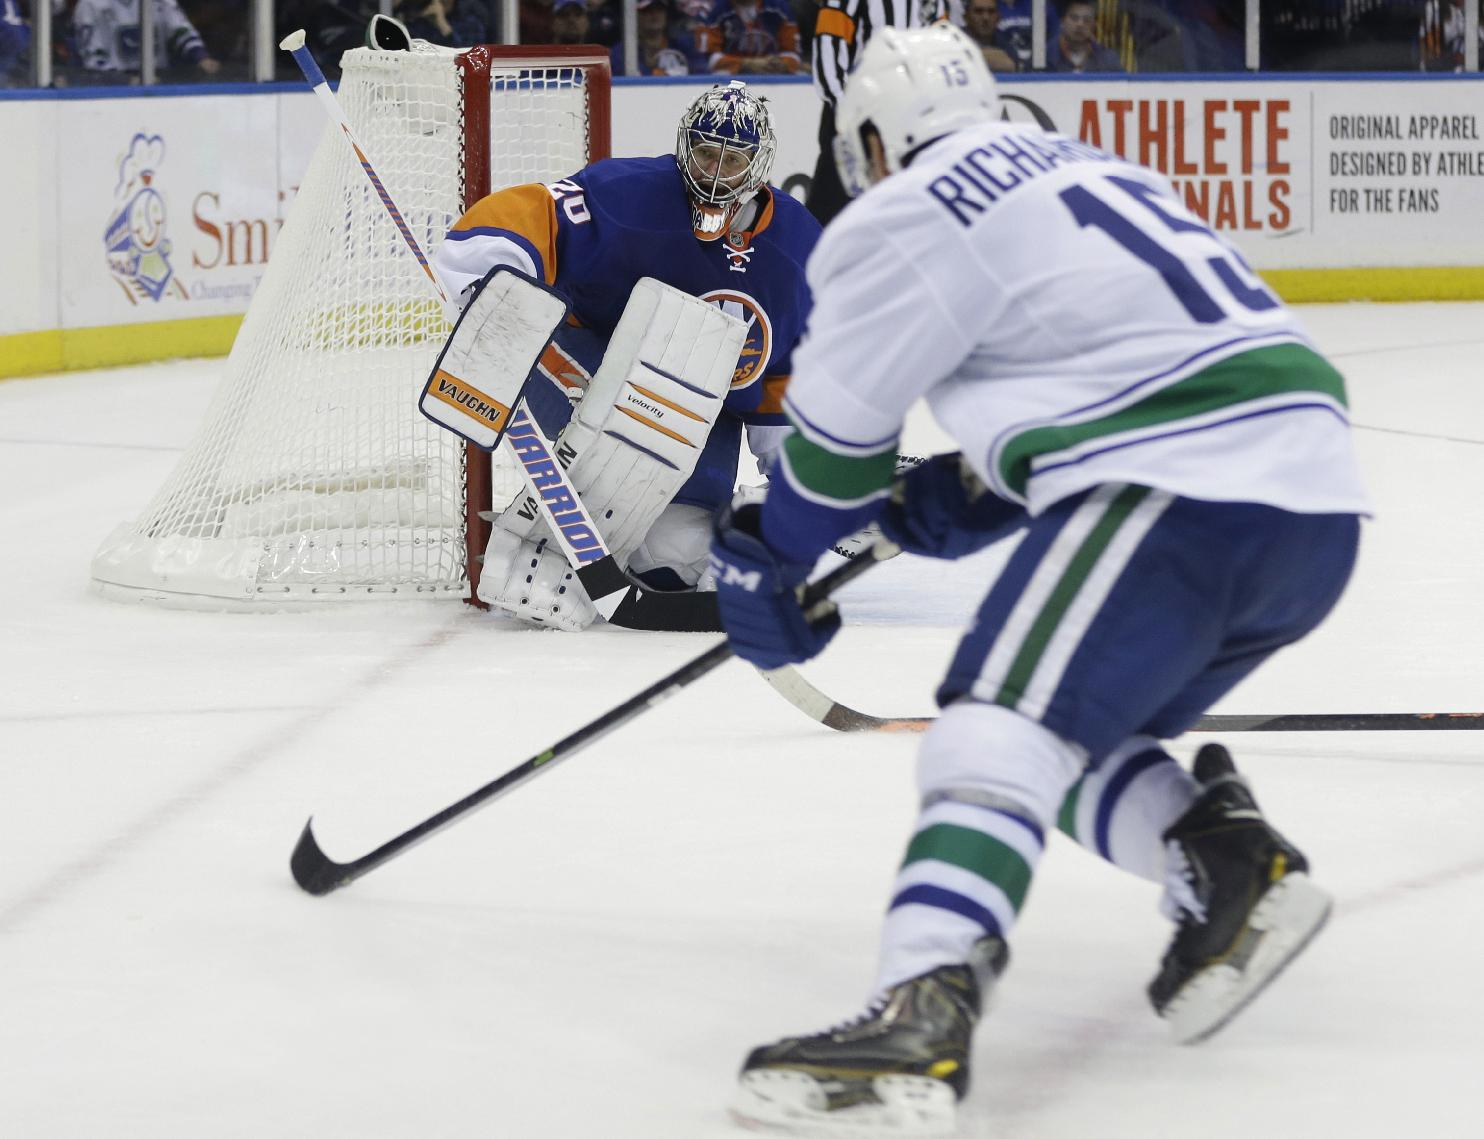 New York Islanders goalie Evgeni Nabokov (20) watches as Vancouver Canucks' Brad Richardson (15) shoots the puck to win the game during the overtime period of an NHL hockey game Tuesday, Oct. 22, 2013 in Uniondale, N.Y. The Canucks won the game 5-4